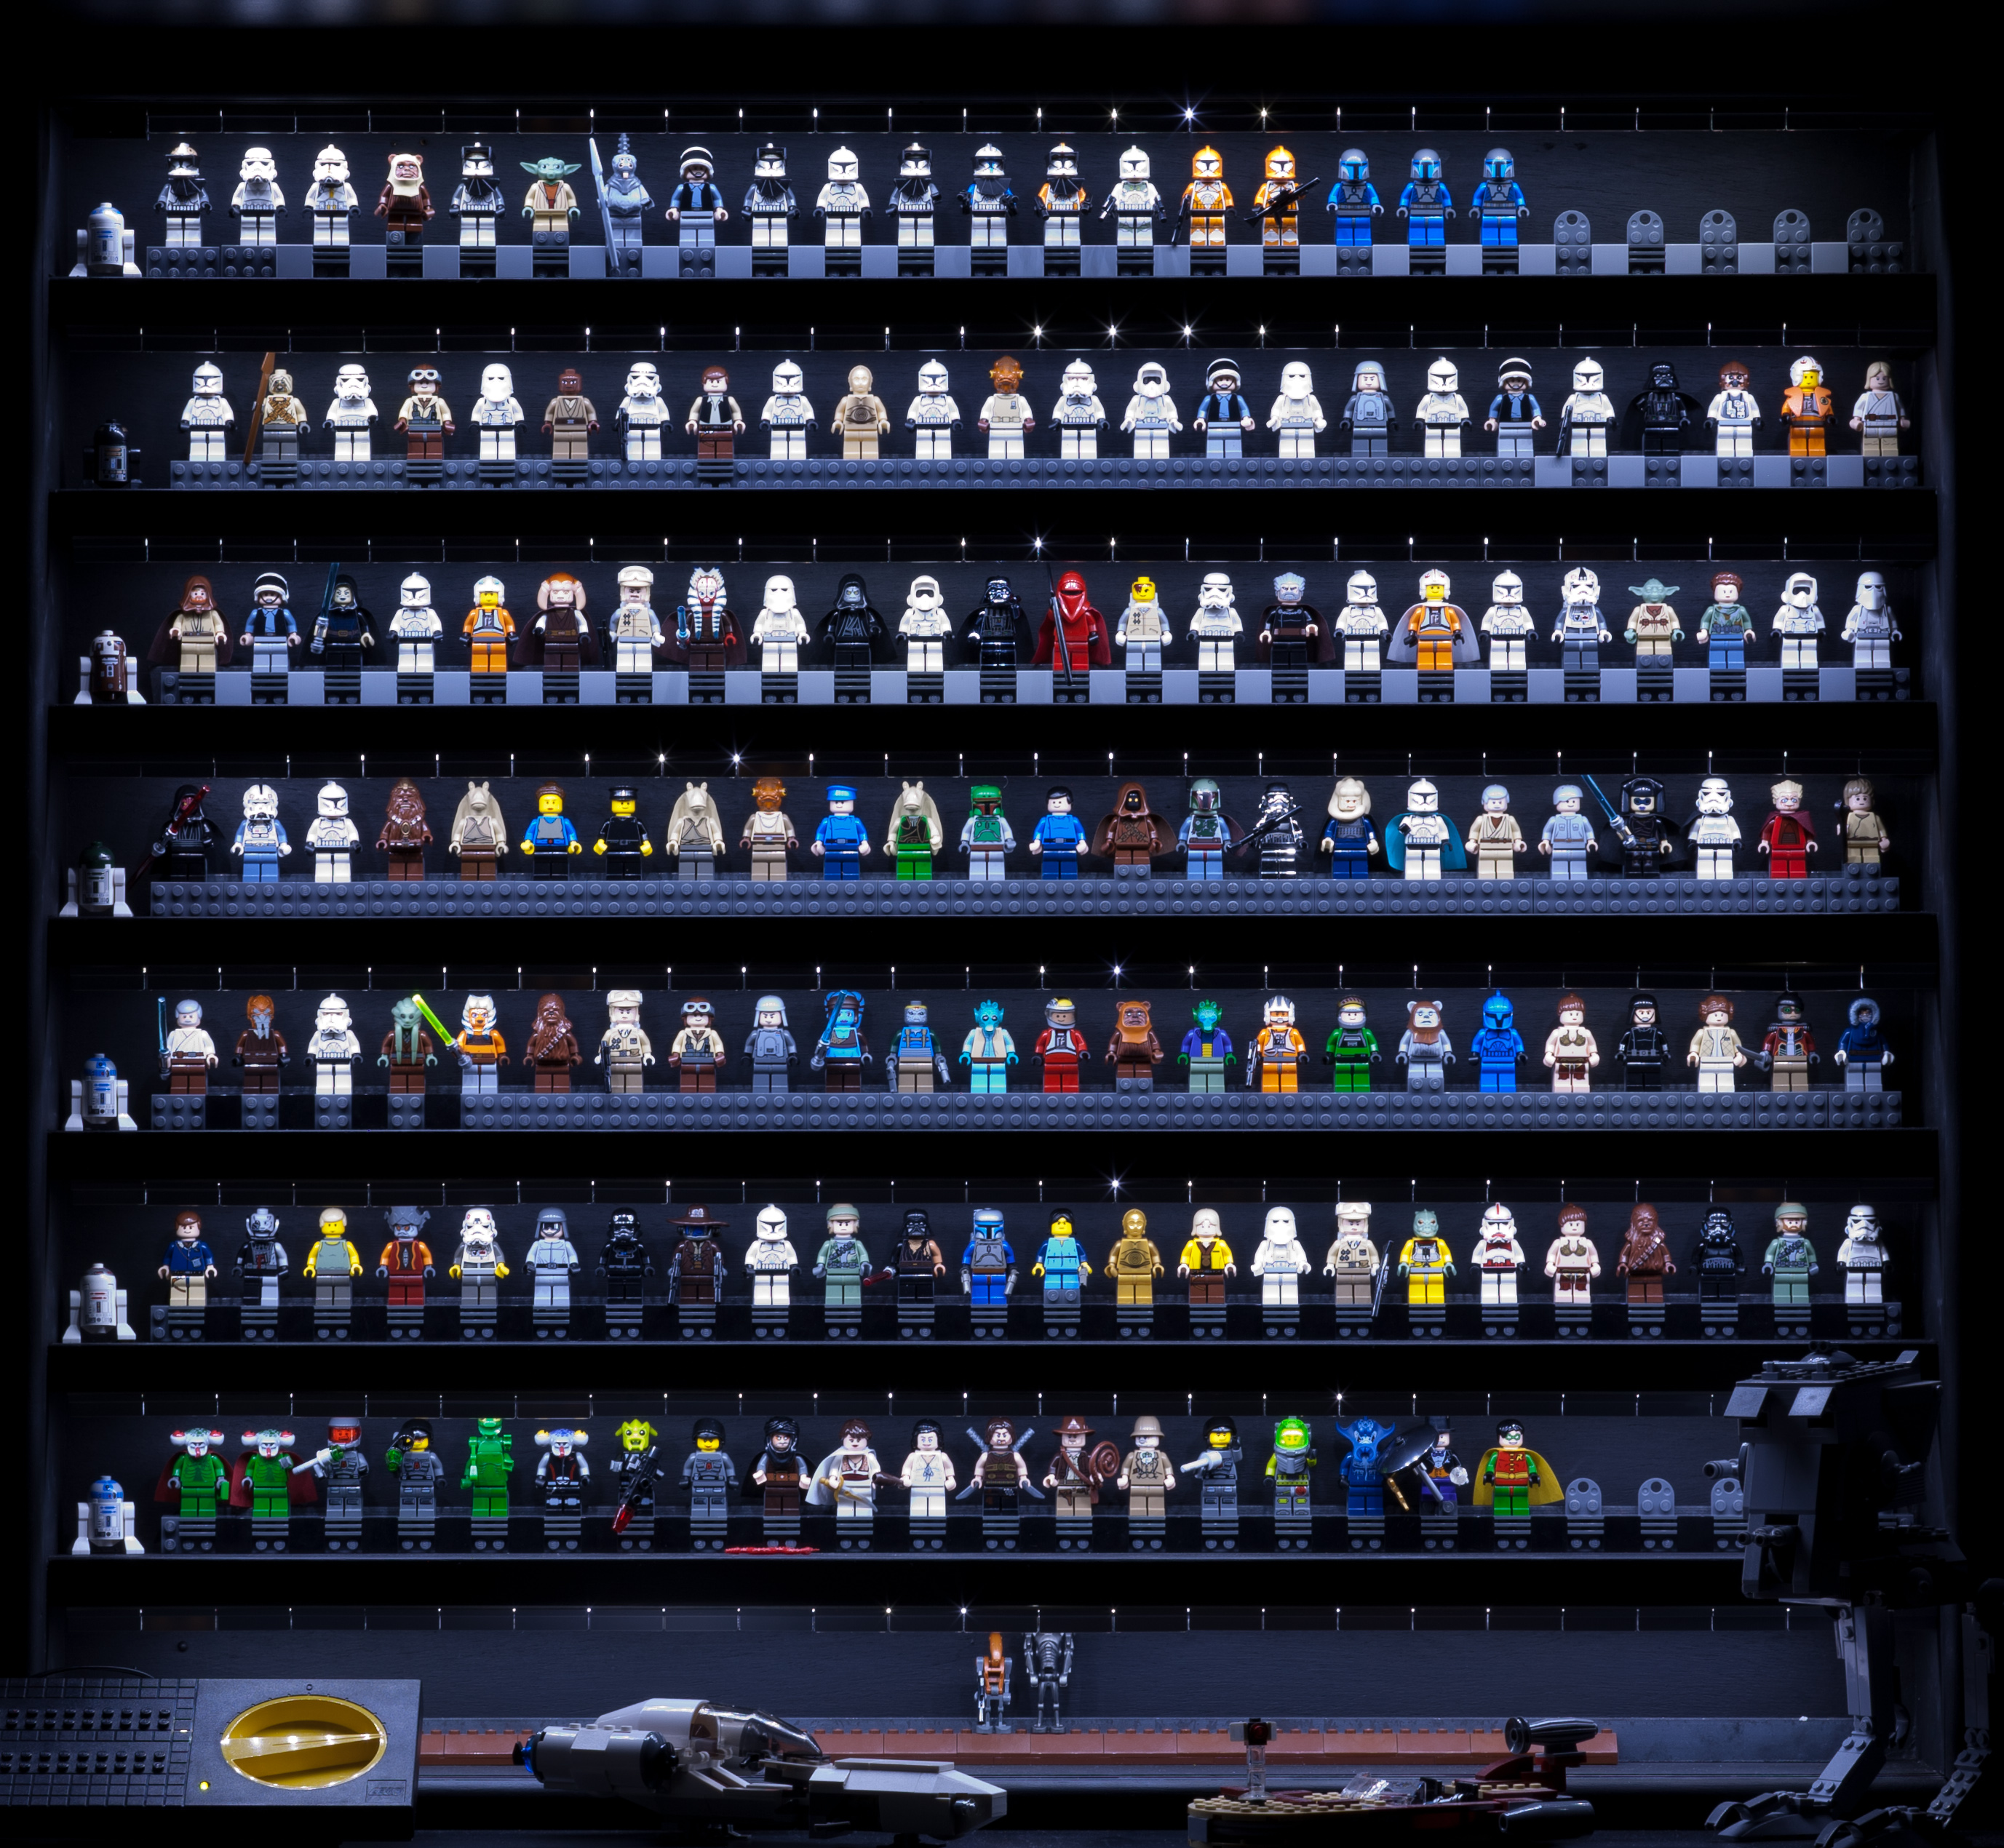 Lego star wars forum from bricks to bothans view topic for Arbol genealogico star wars